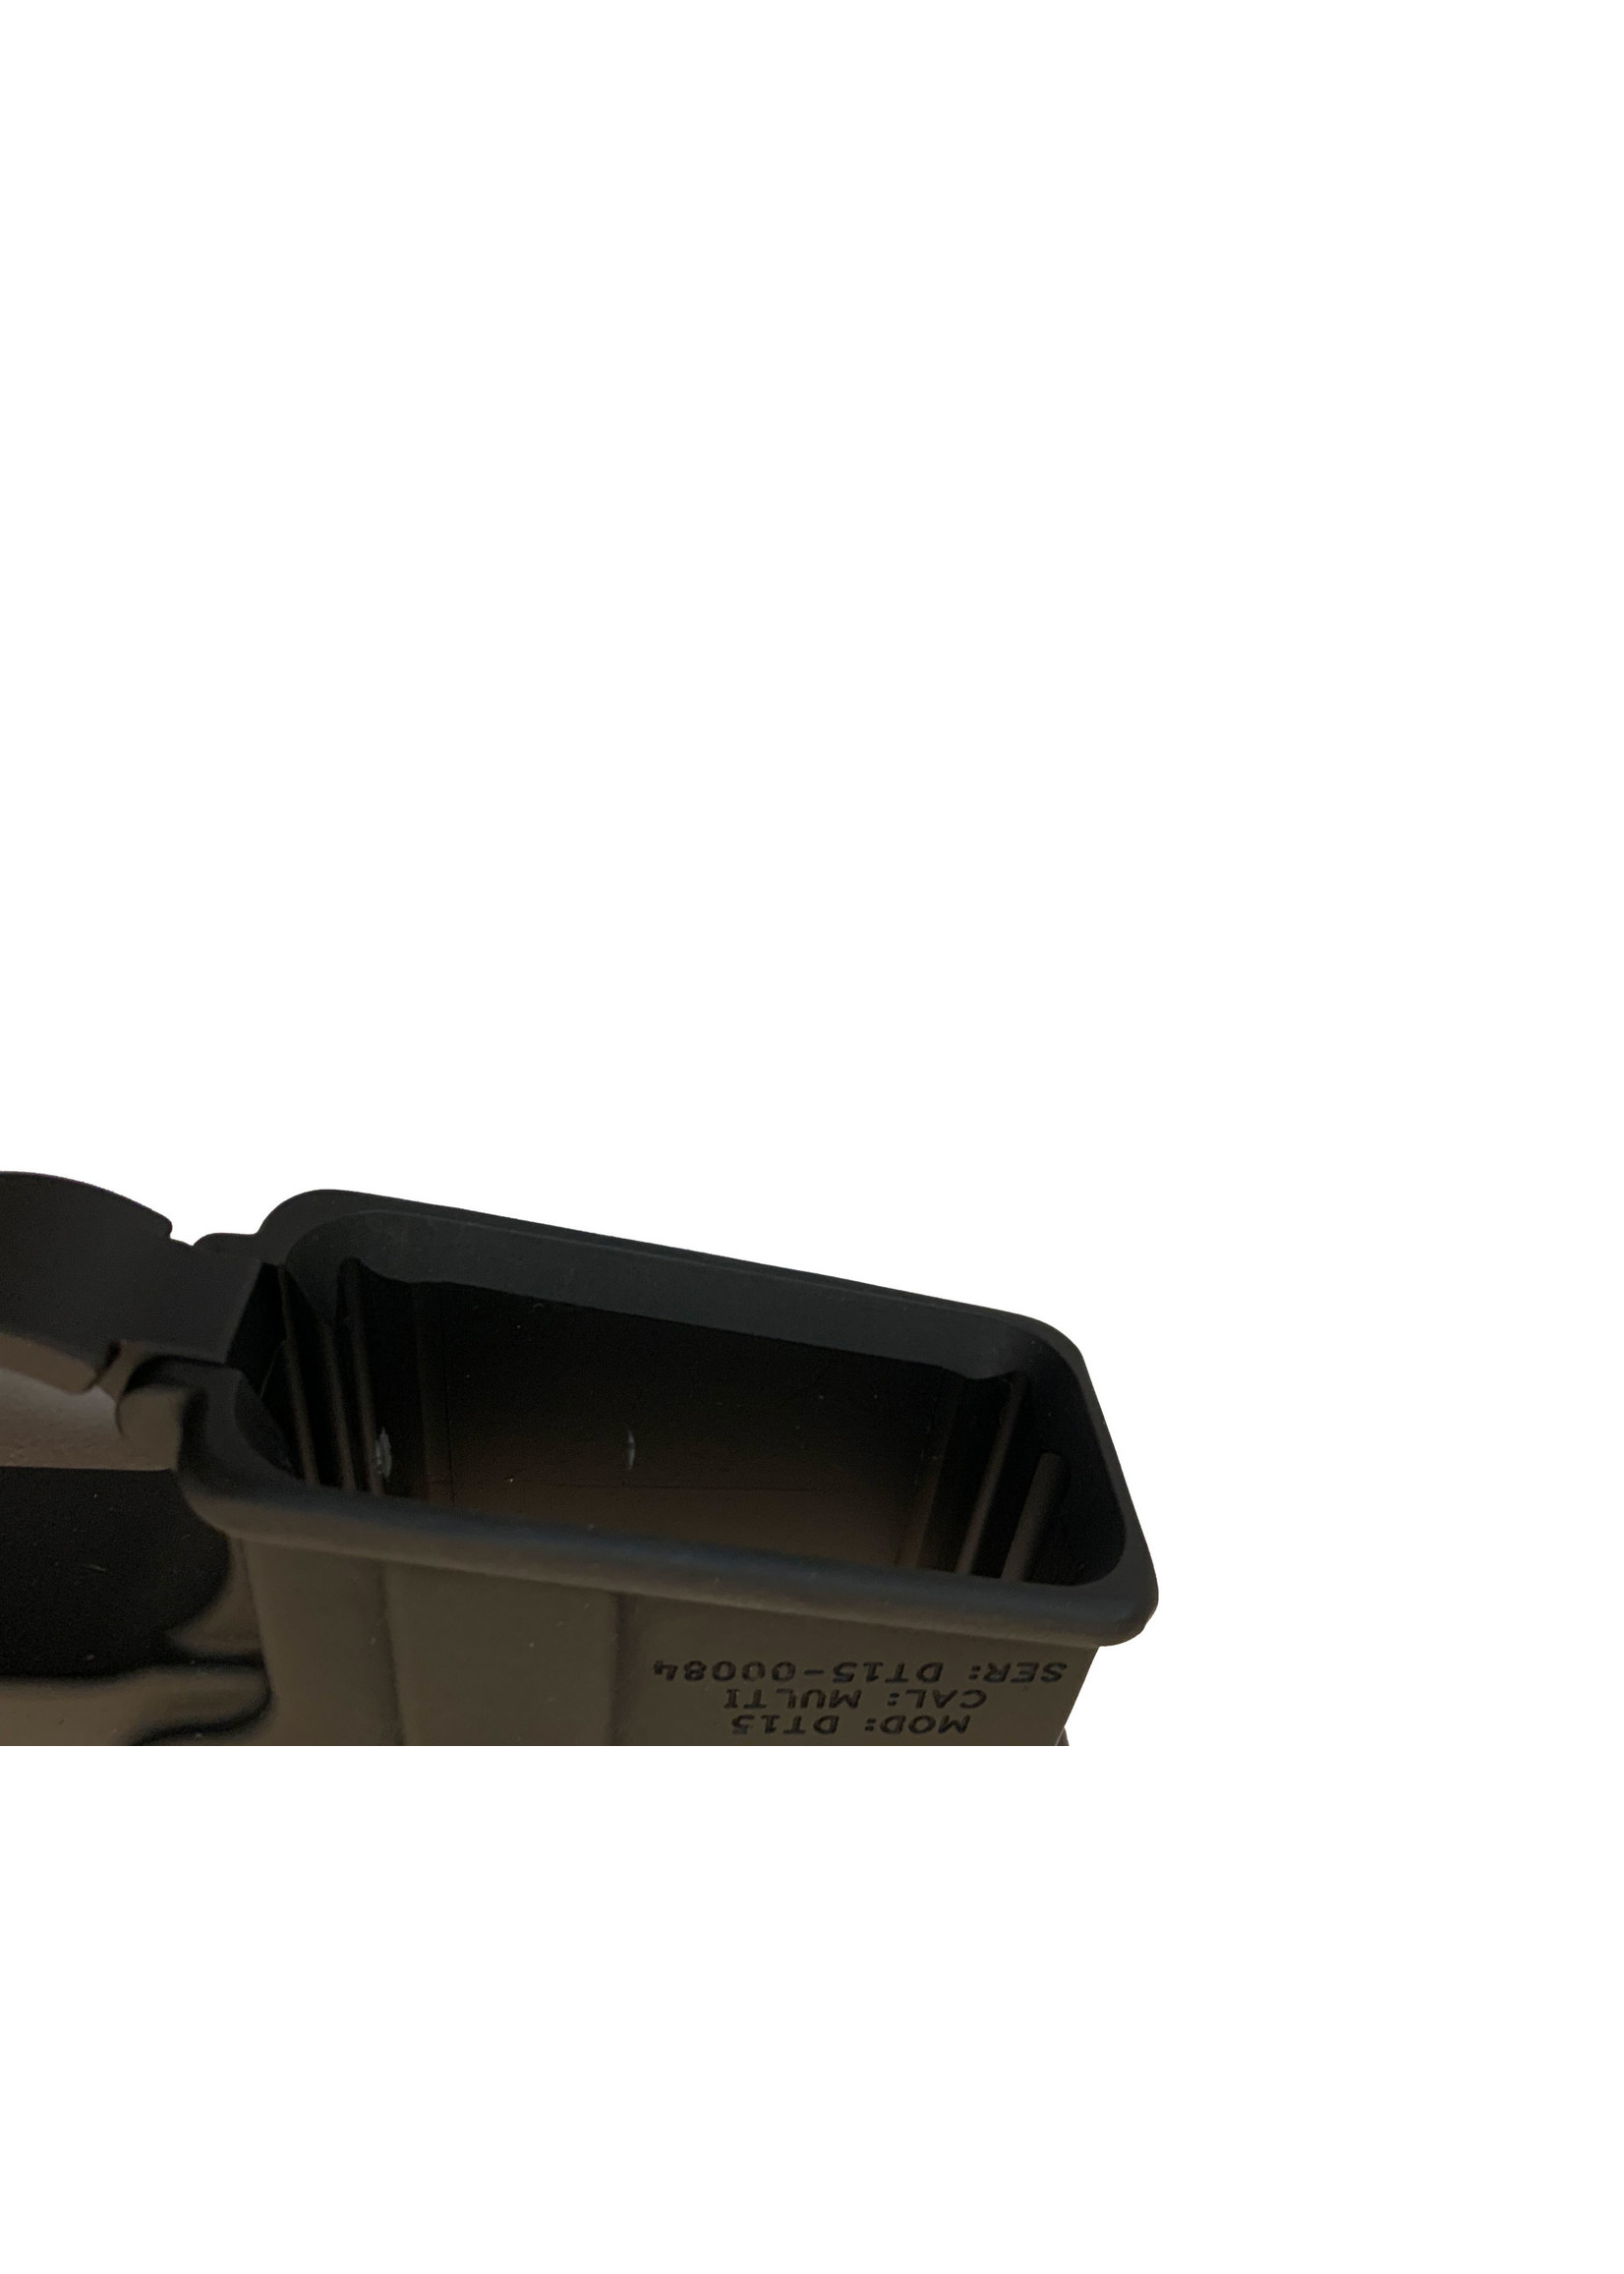 Disruptive Tactical DT15 RIFLE LOWER COMPLETE